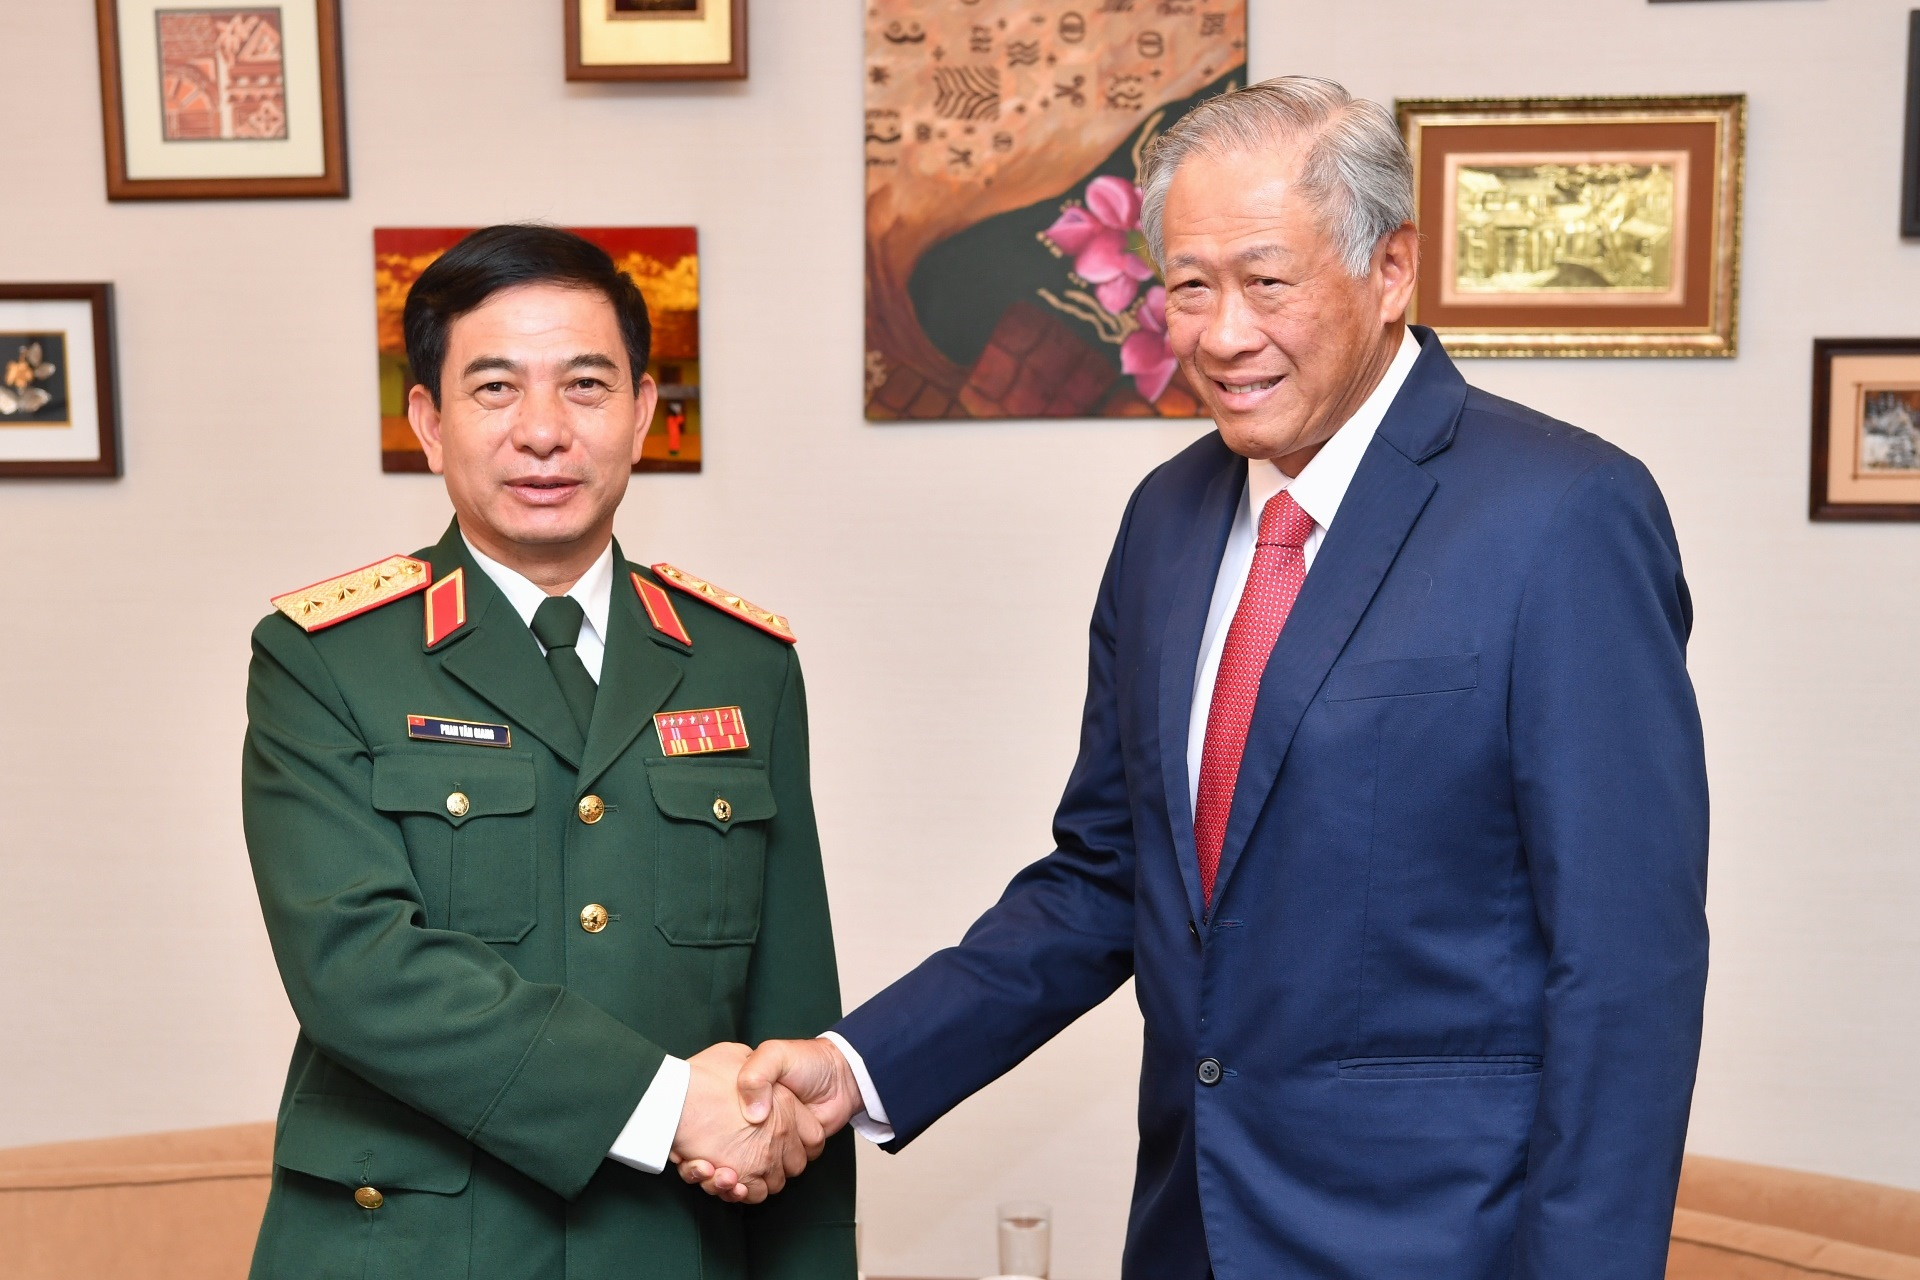 The Vietnam People's Army Chief of General Staff and Vice Minister of National Defence Senior Lieutenant-General (SNR-LG) Phan Van Giang calling on Minister for Defence Dr Ng Eng Hen this morning.